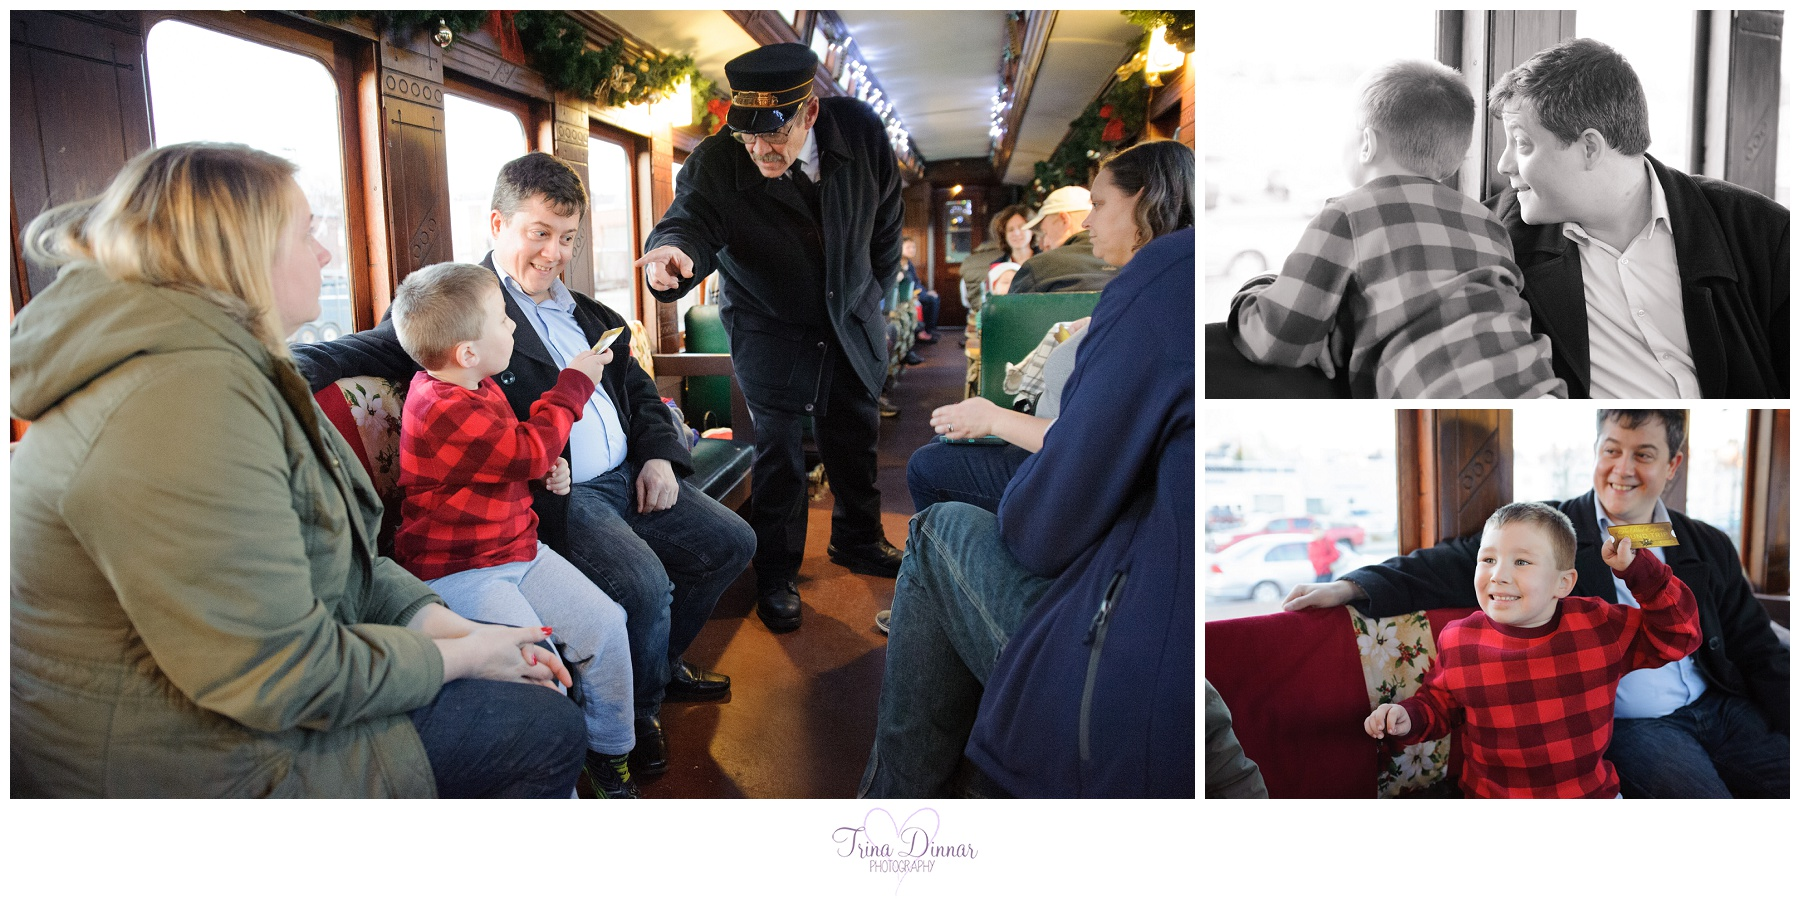 Photos from the Polar Express train ride in Portland, Maine